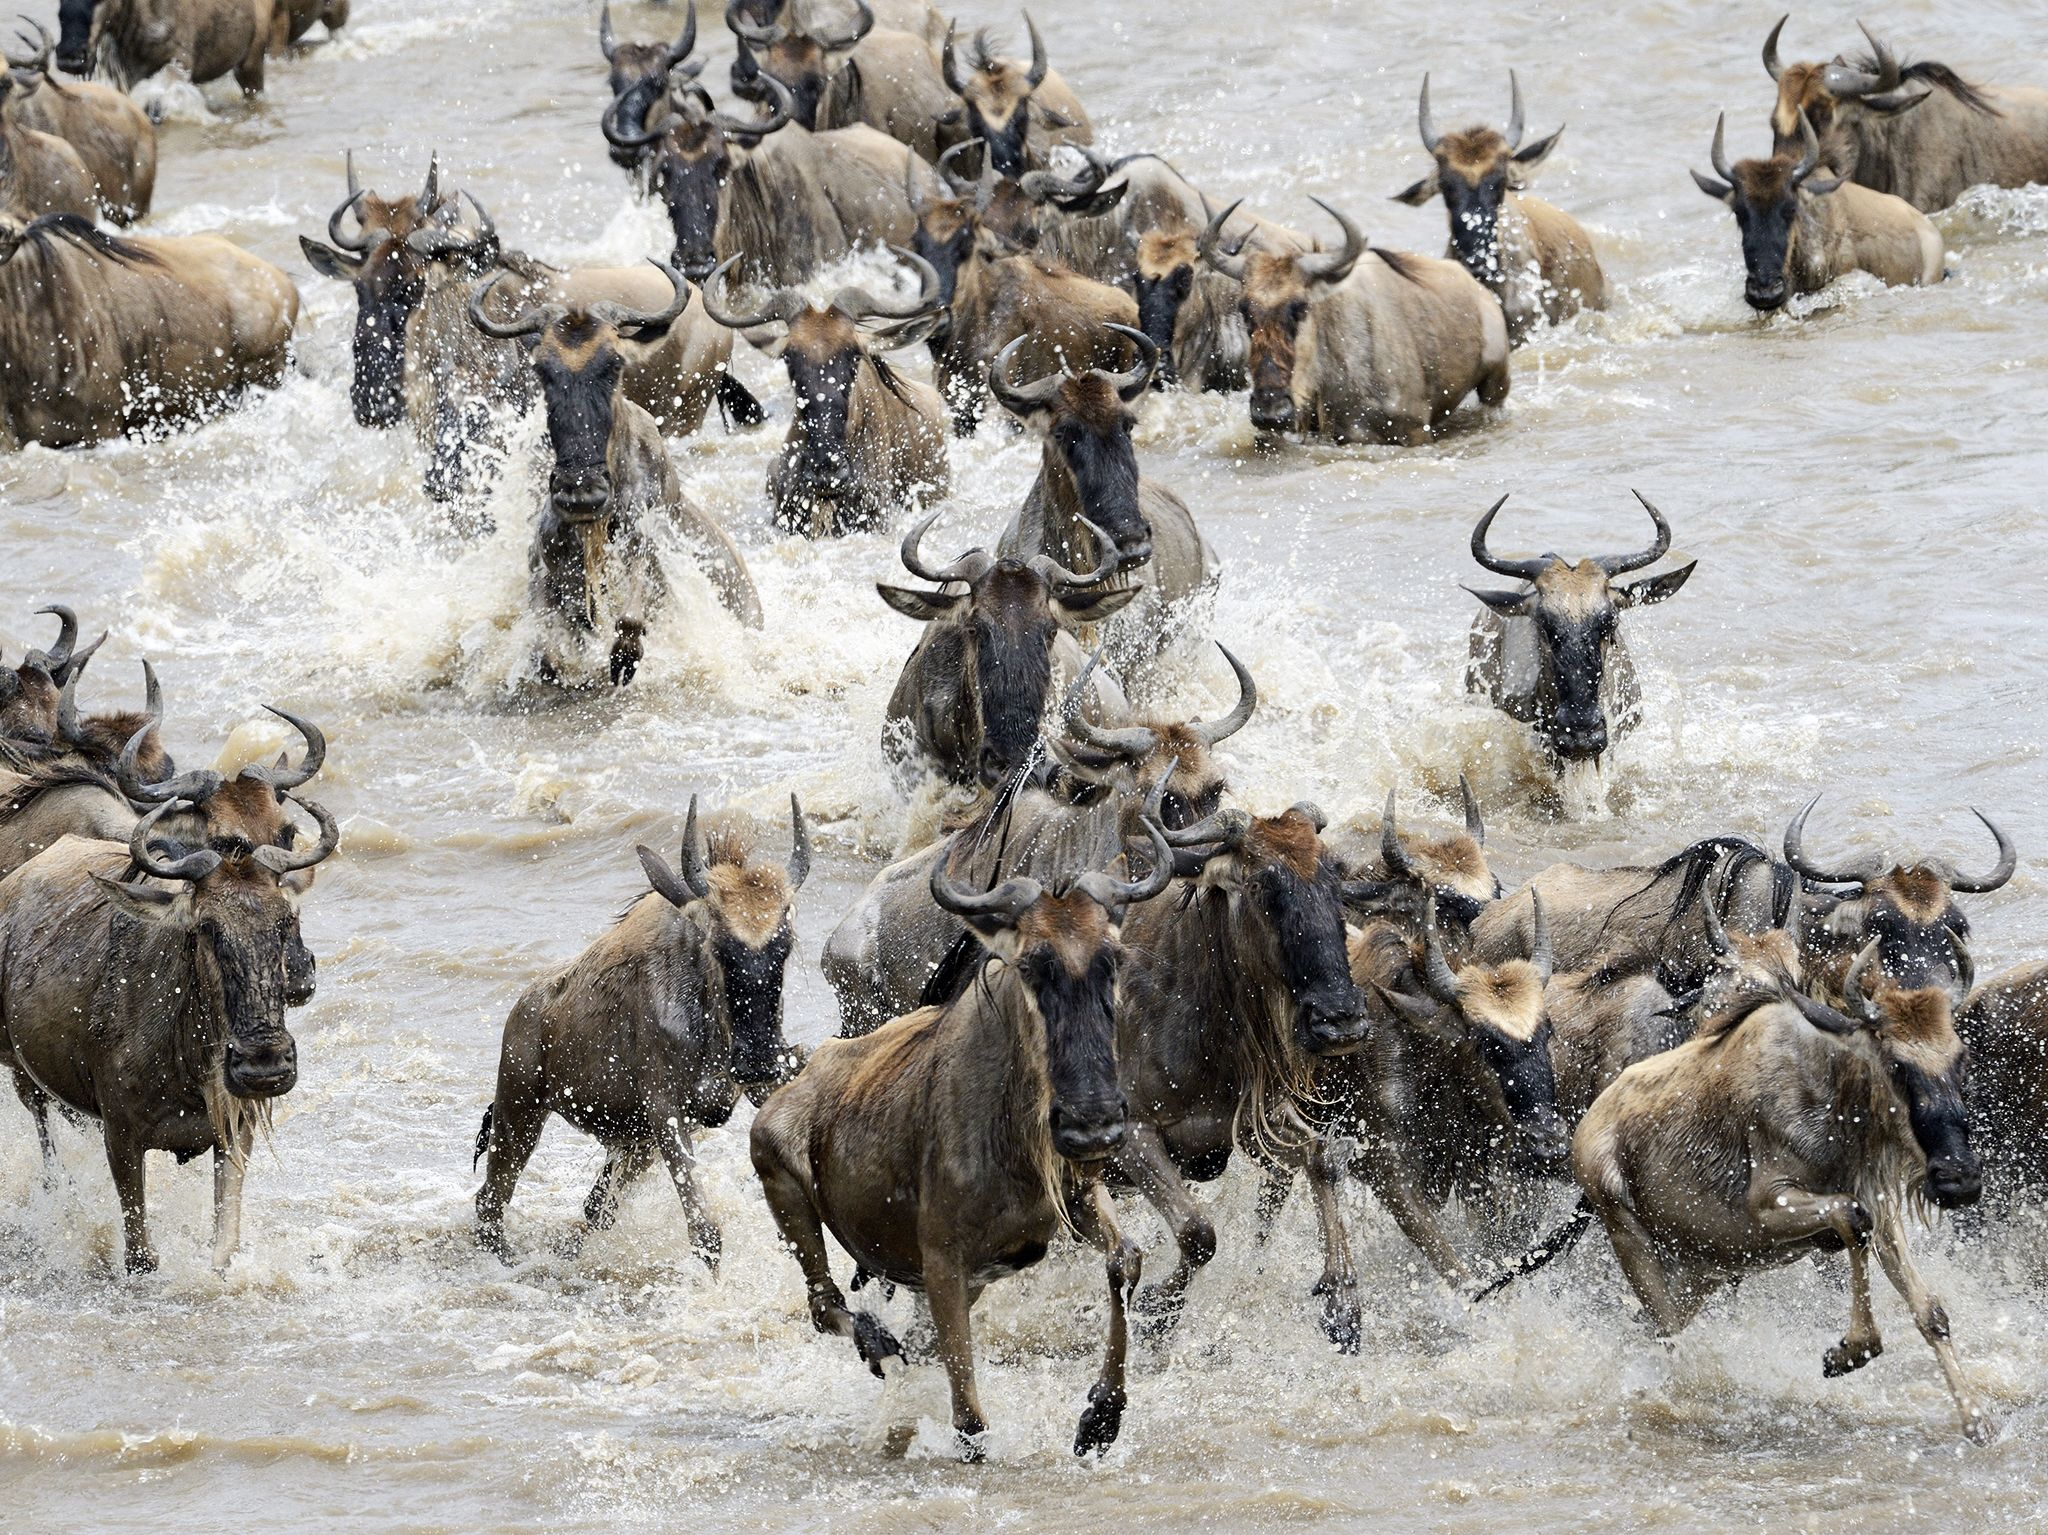 Tanzania:  Wildebeest migration in Serengeti National Park. This image is from Inside The Pack. [Photo of the day - September 2017]